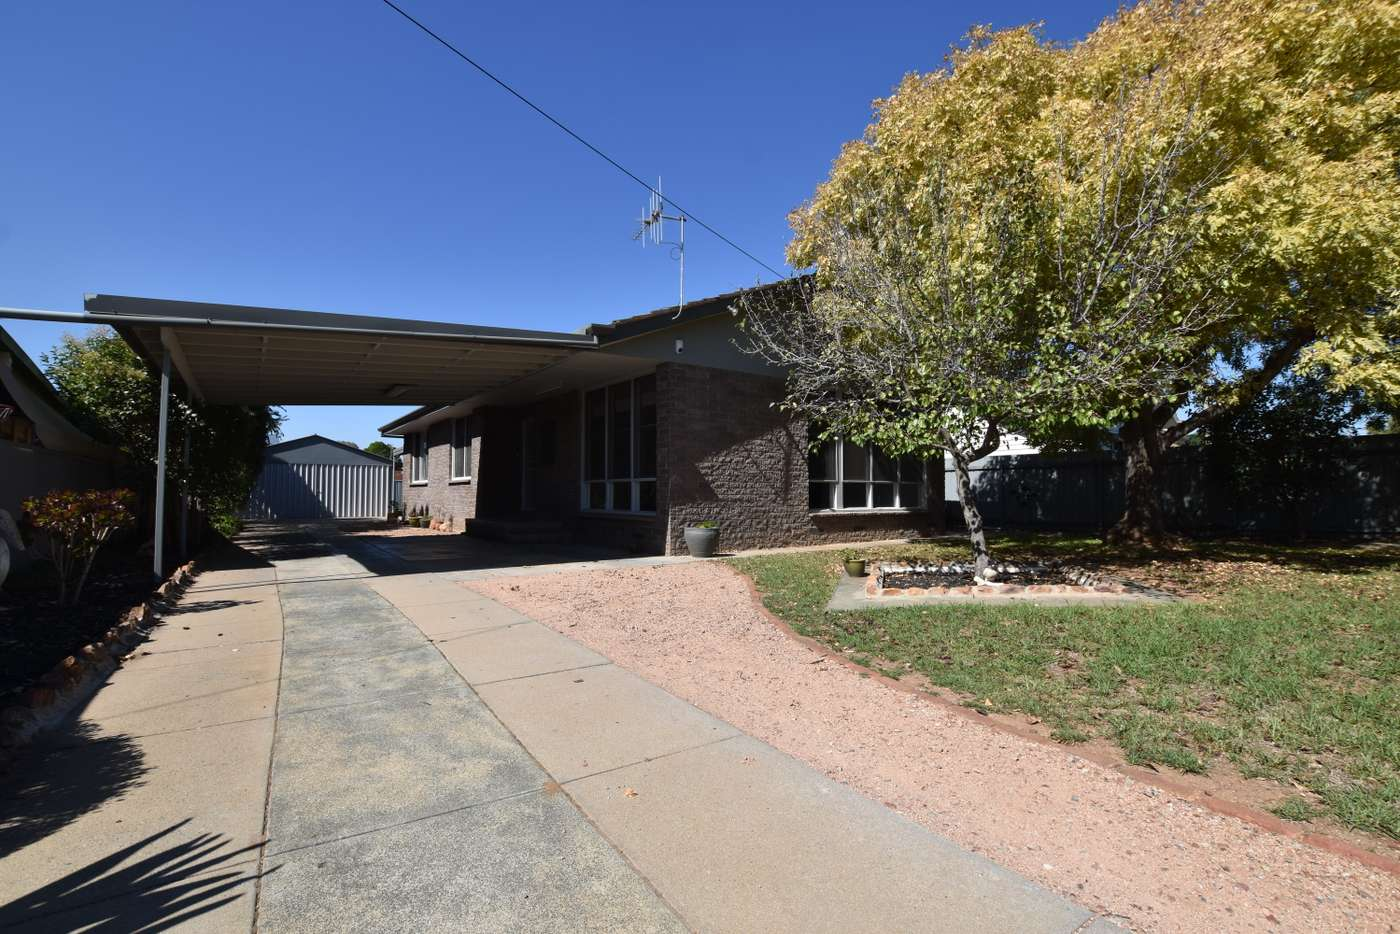 Main view of Homely house listing, 98 Albion Street, Kyabram VIC 3620